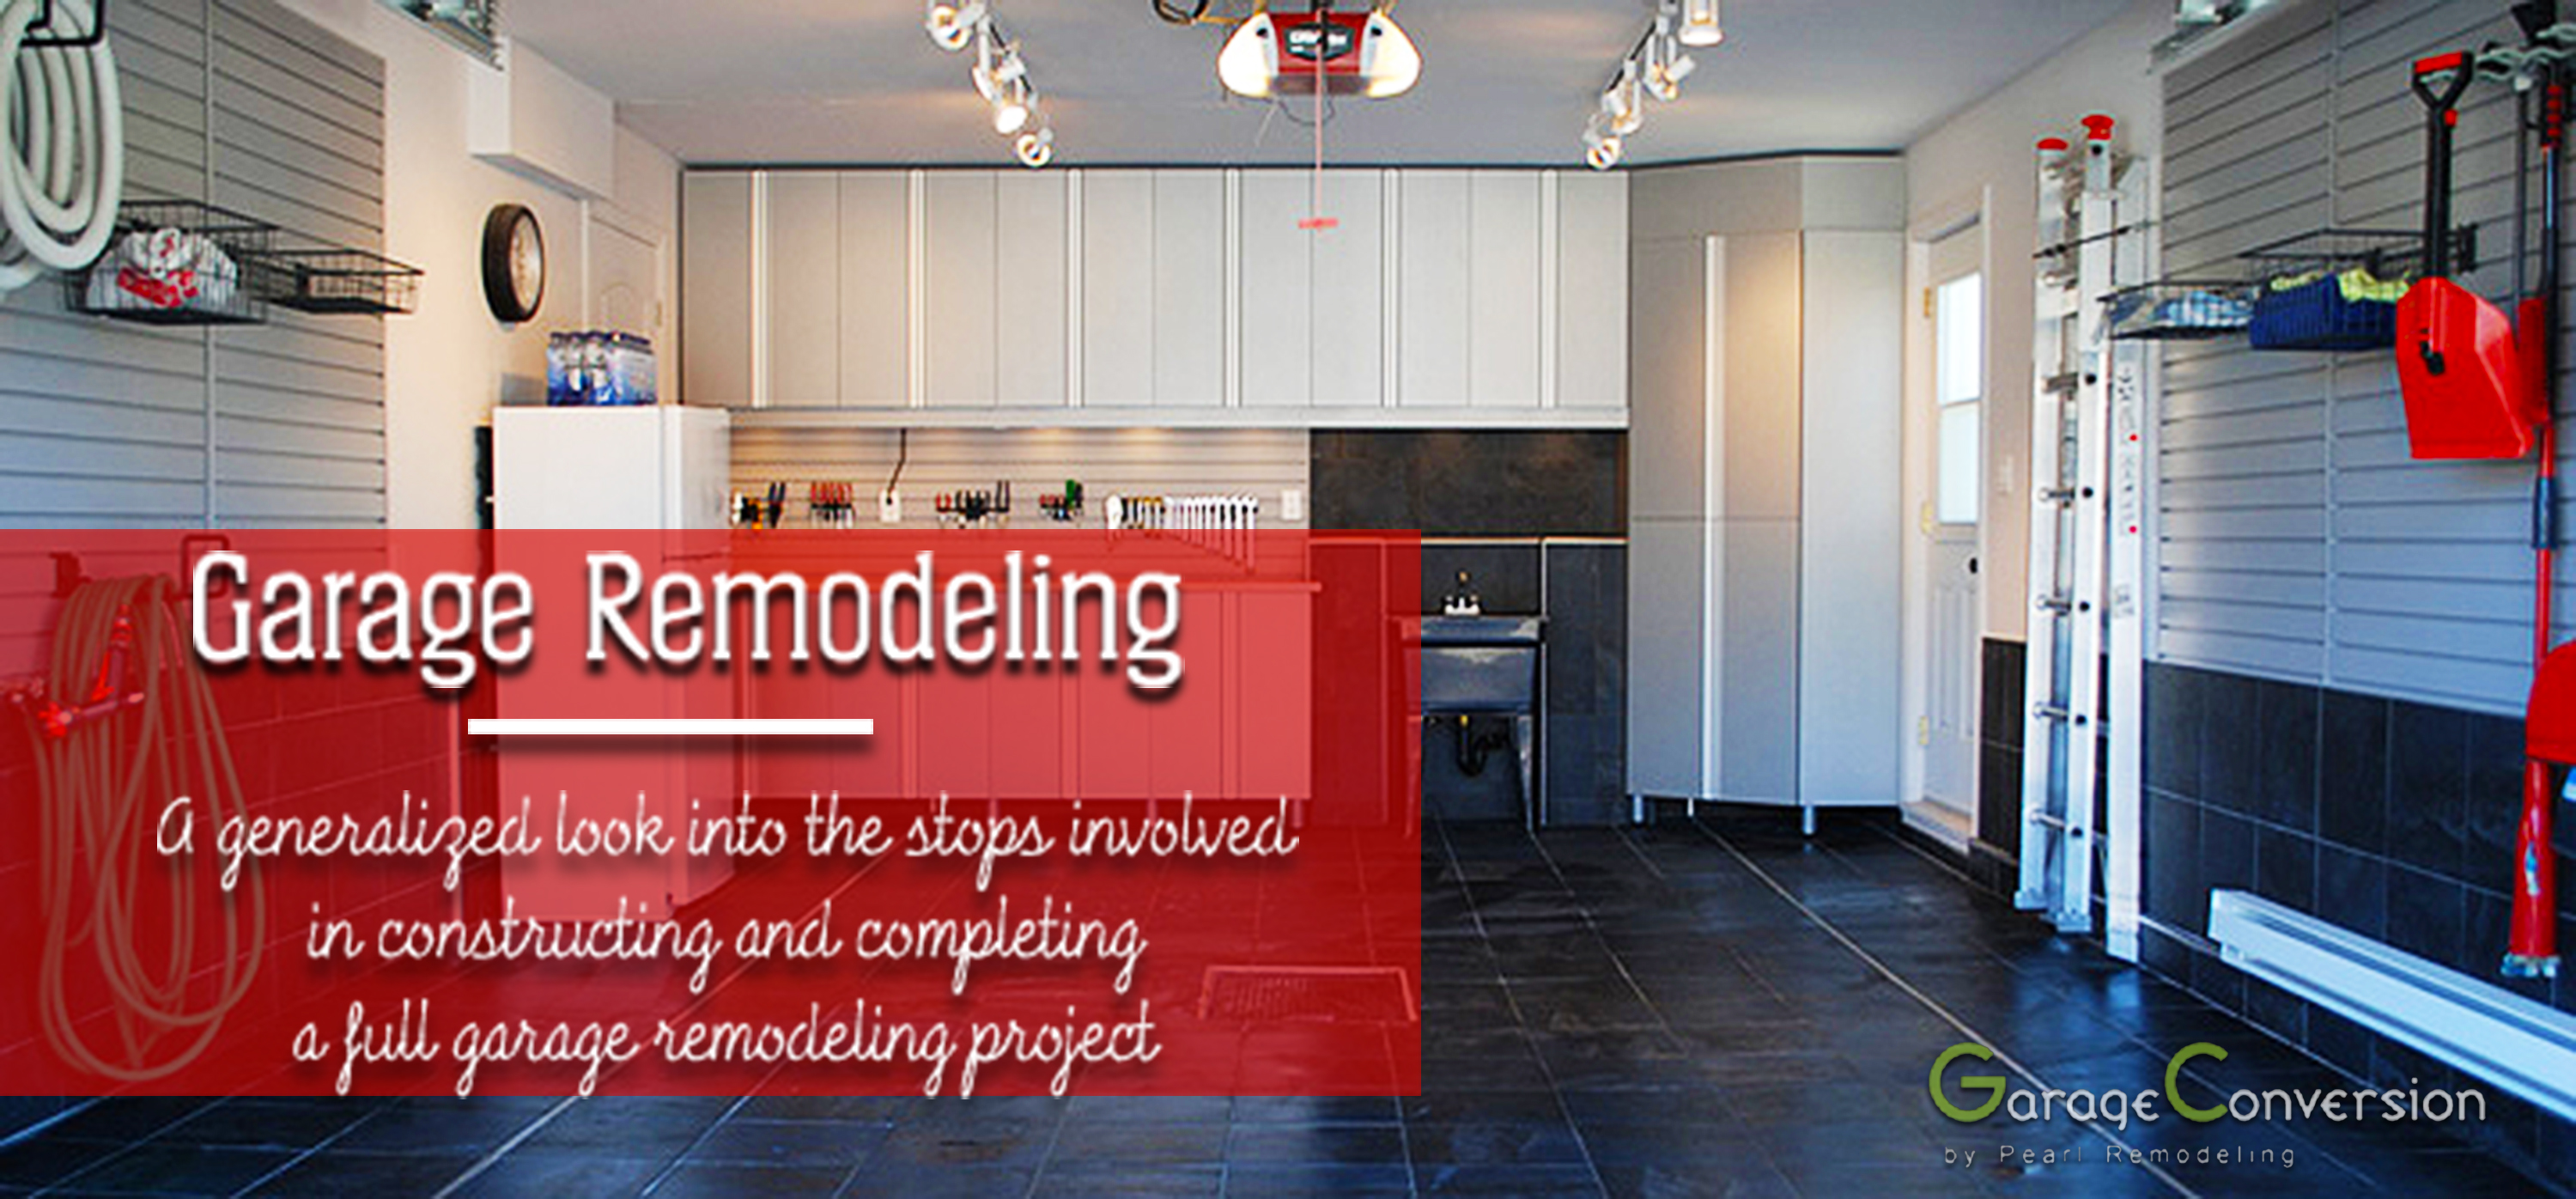 Wondering what a garage remodel might look like for you? Here is a generalized idea of the steps involved with a garage remodel. Note: Not every garage remodel is the same! This guide is a very generalized, broad view of a remodeling project